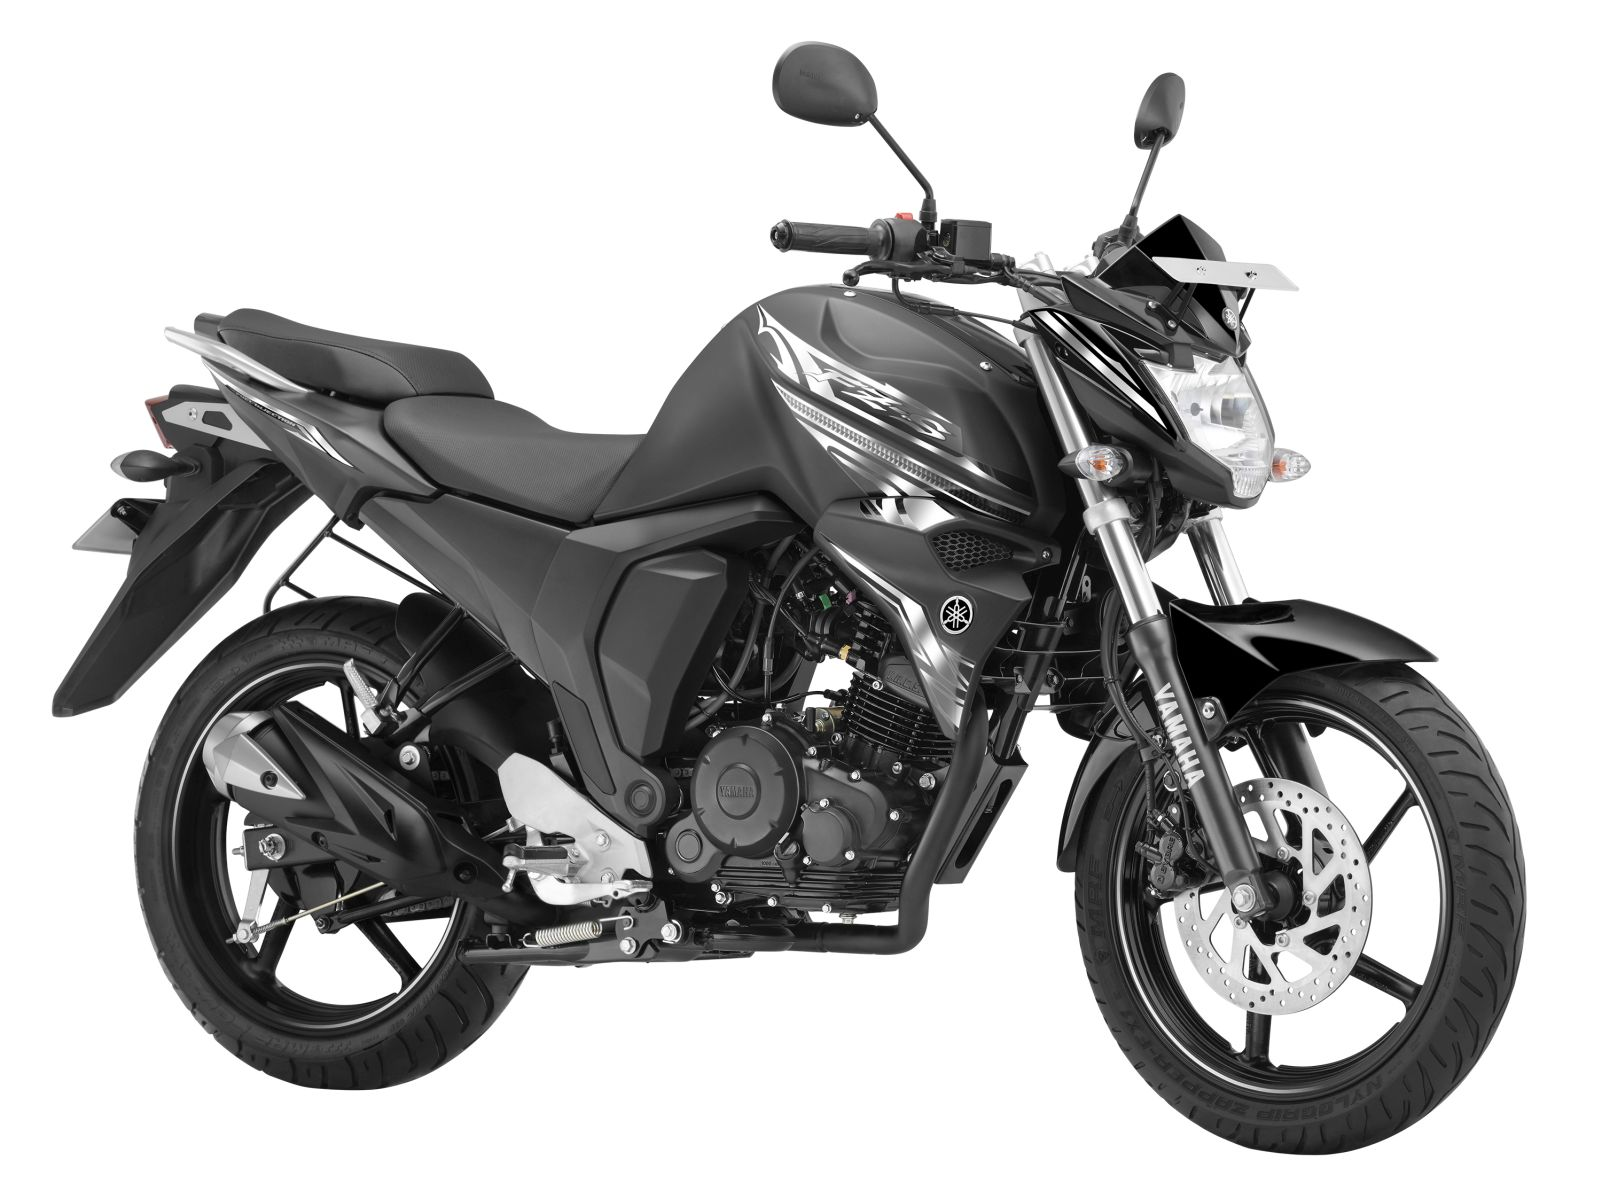 Yamaha Fz Models In India